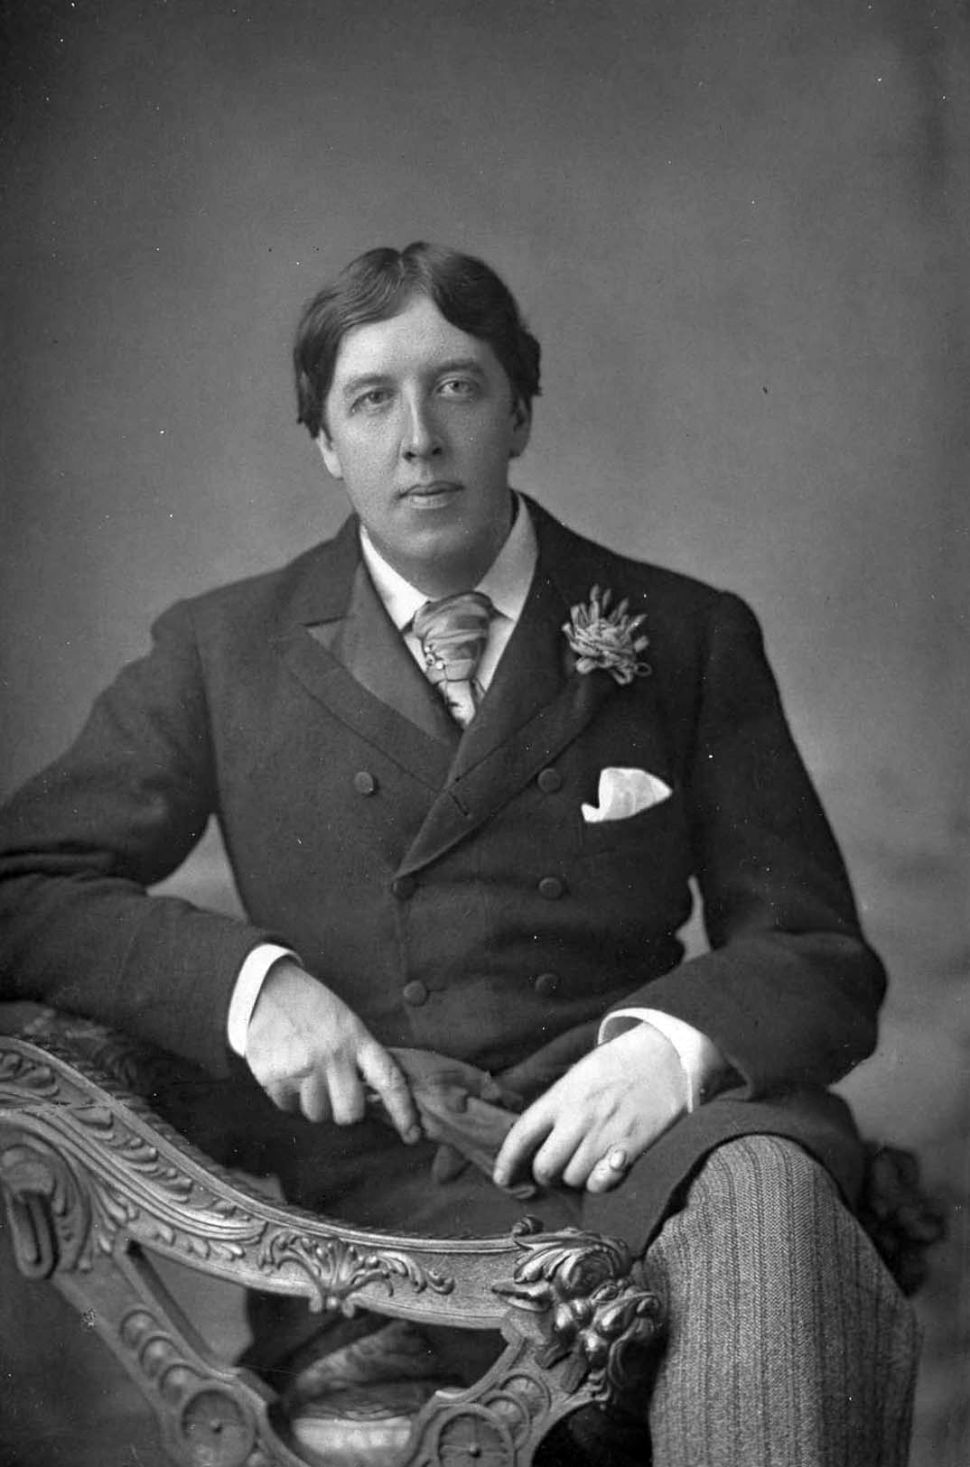 The Internet Thinks Oscar Wilde Would've Been the King of Twitter